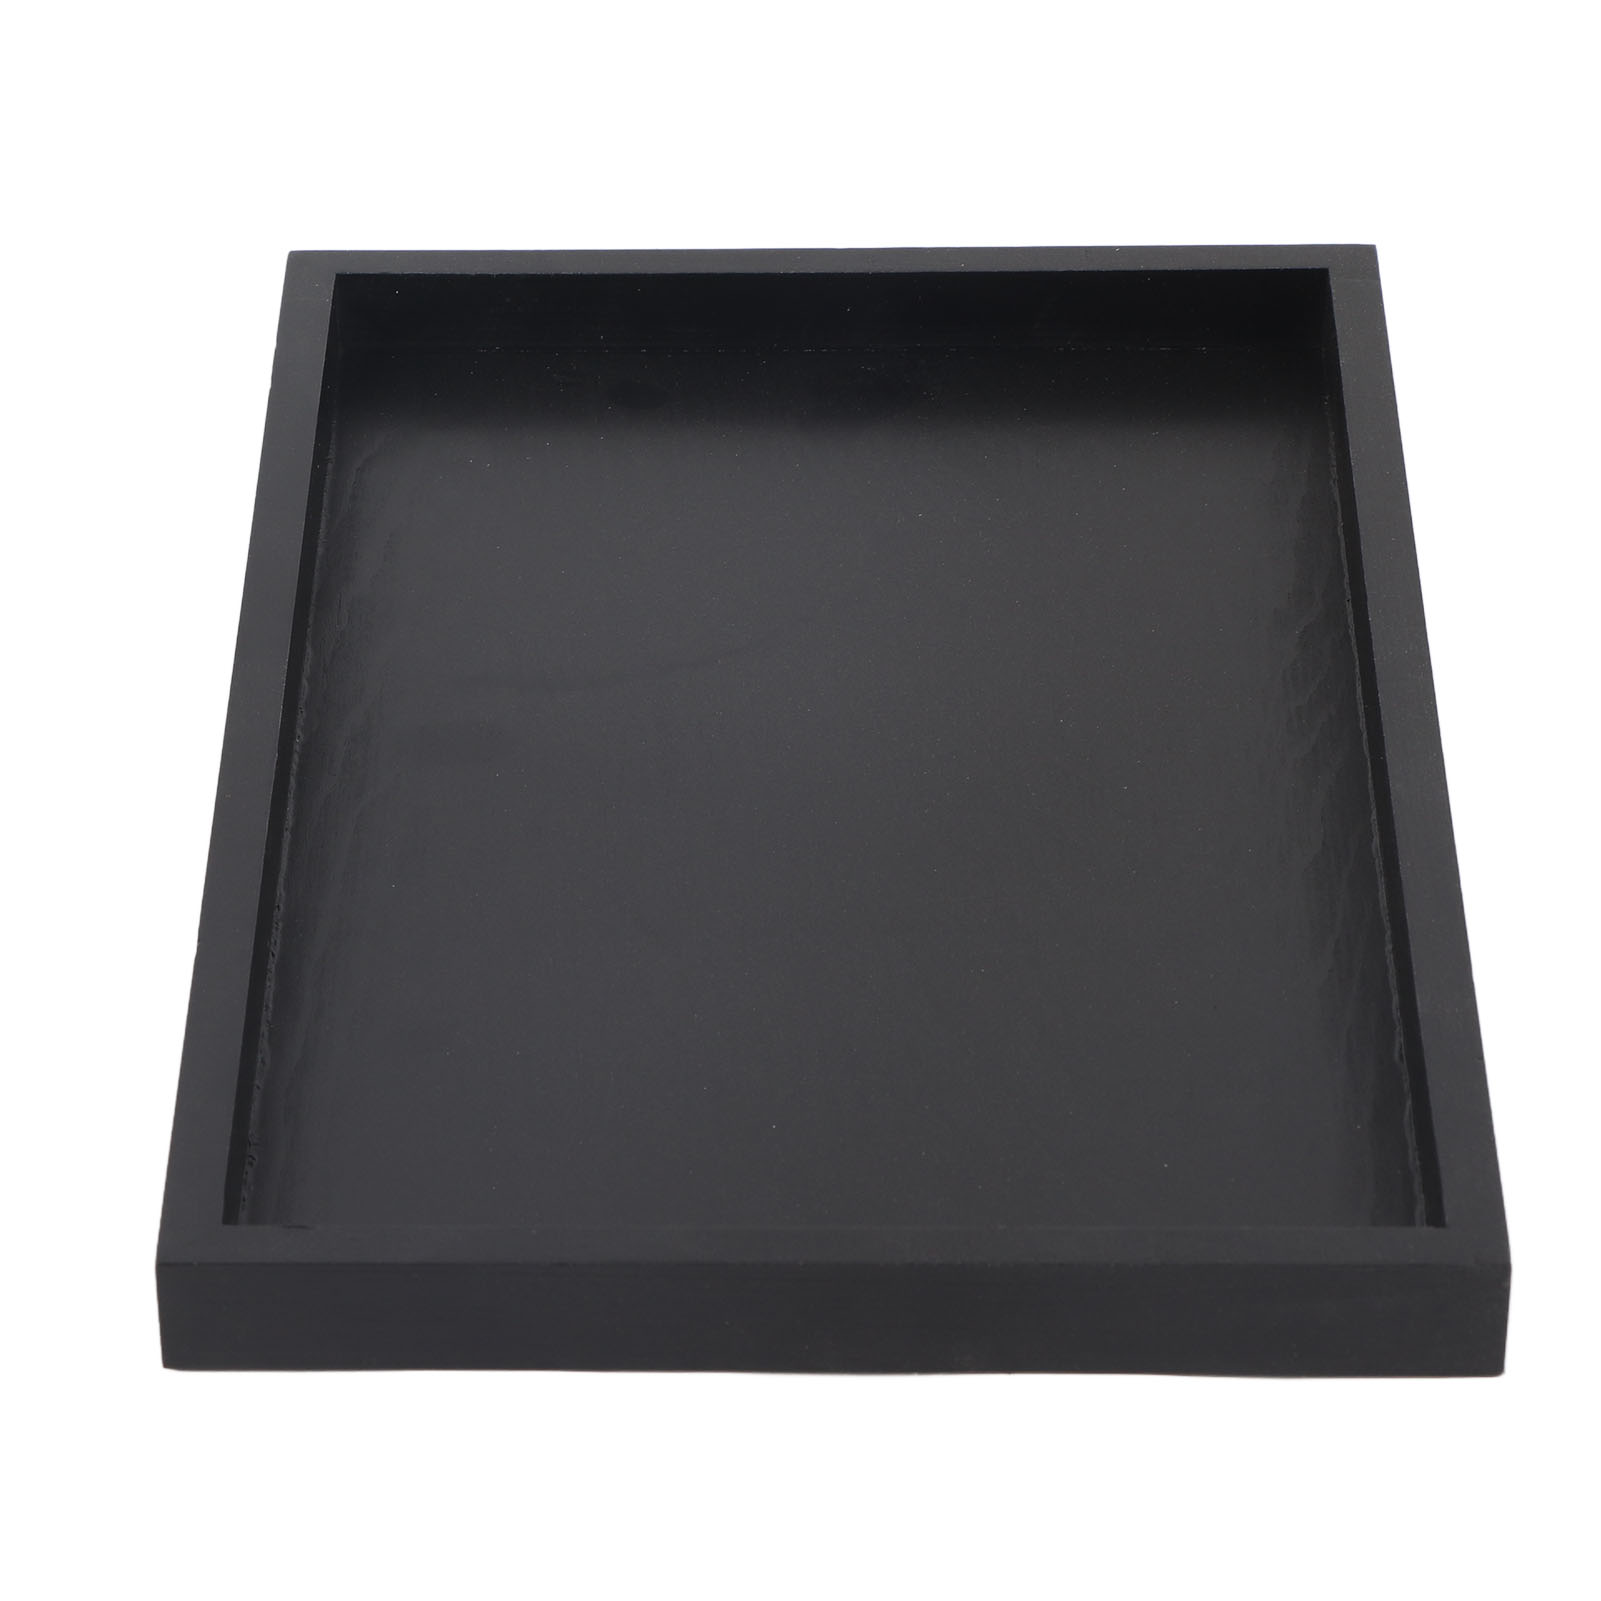 Large-Wood-Serving-Tea-Water-Drinks-Tray-Wooden-Breakfast-Food-Tea-Serving-Trays thumbnail 20